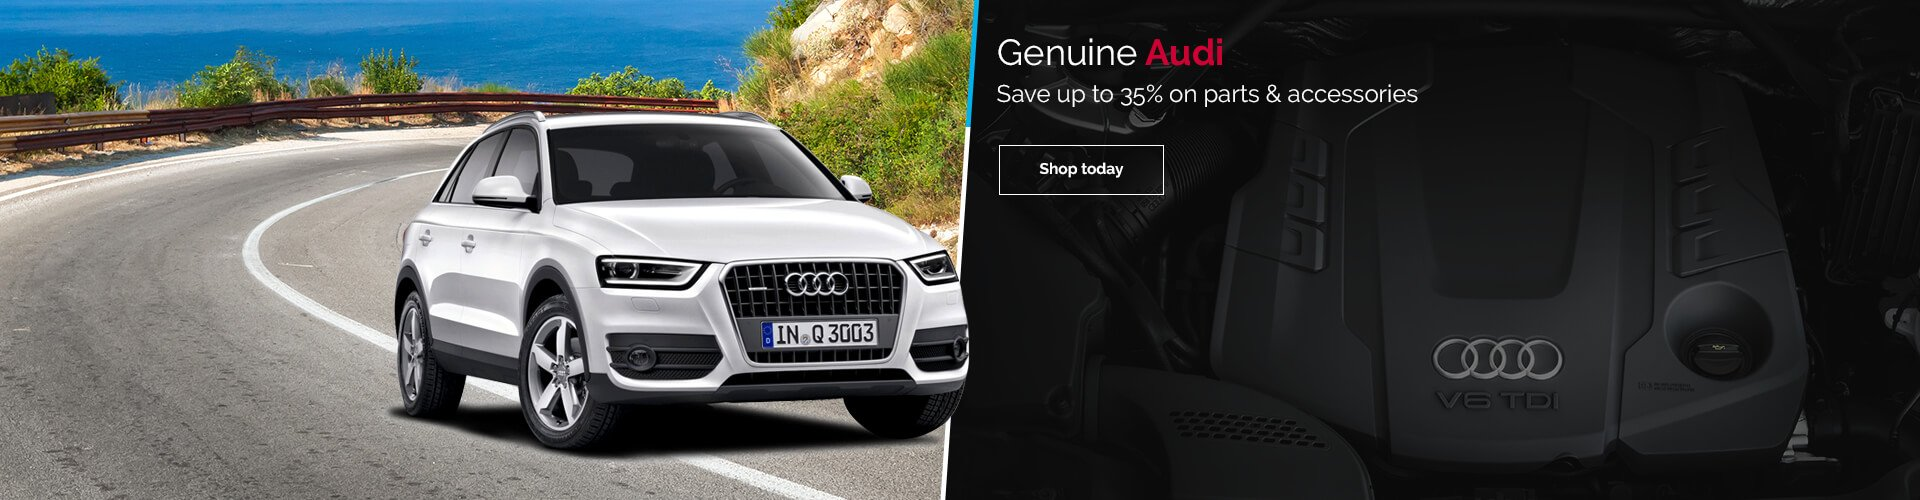 Genuine Audi Parts & Accessories